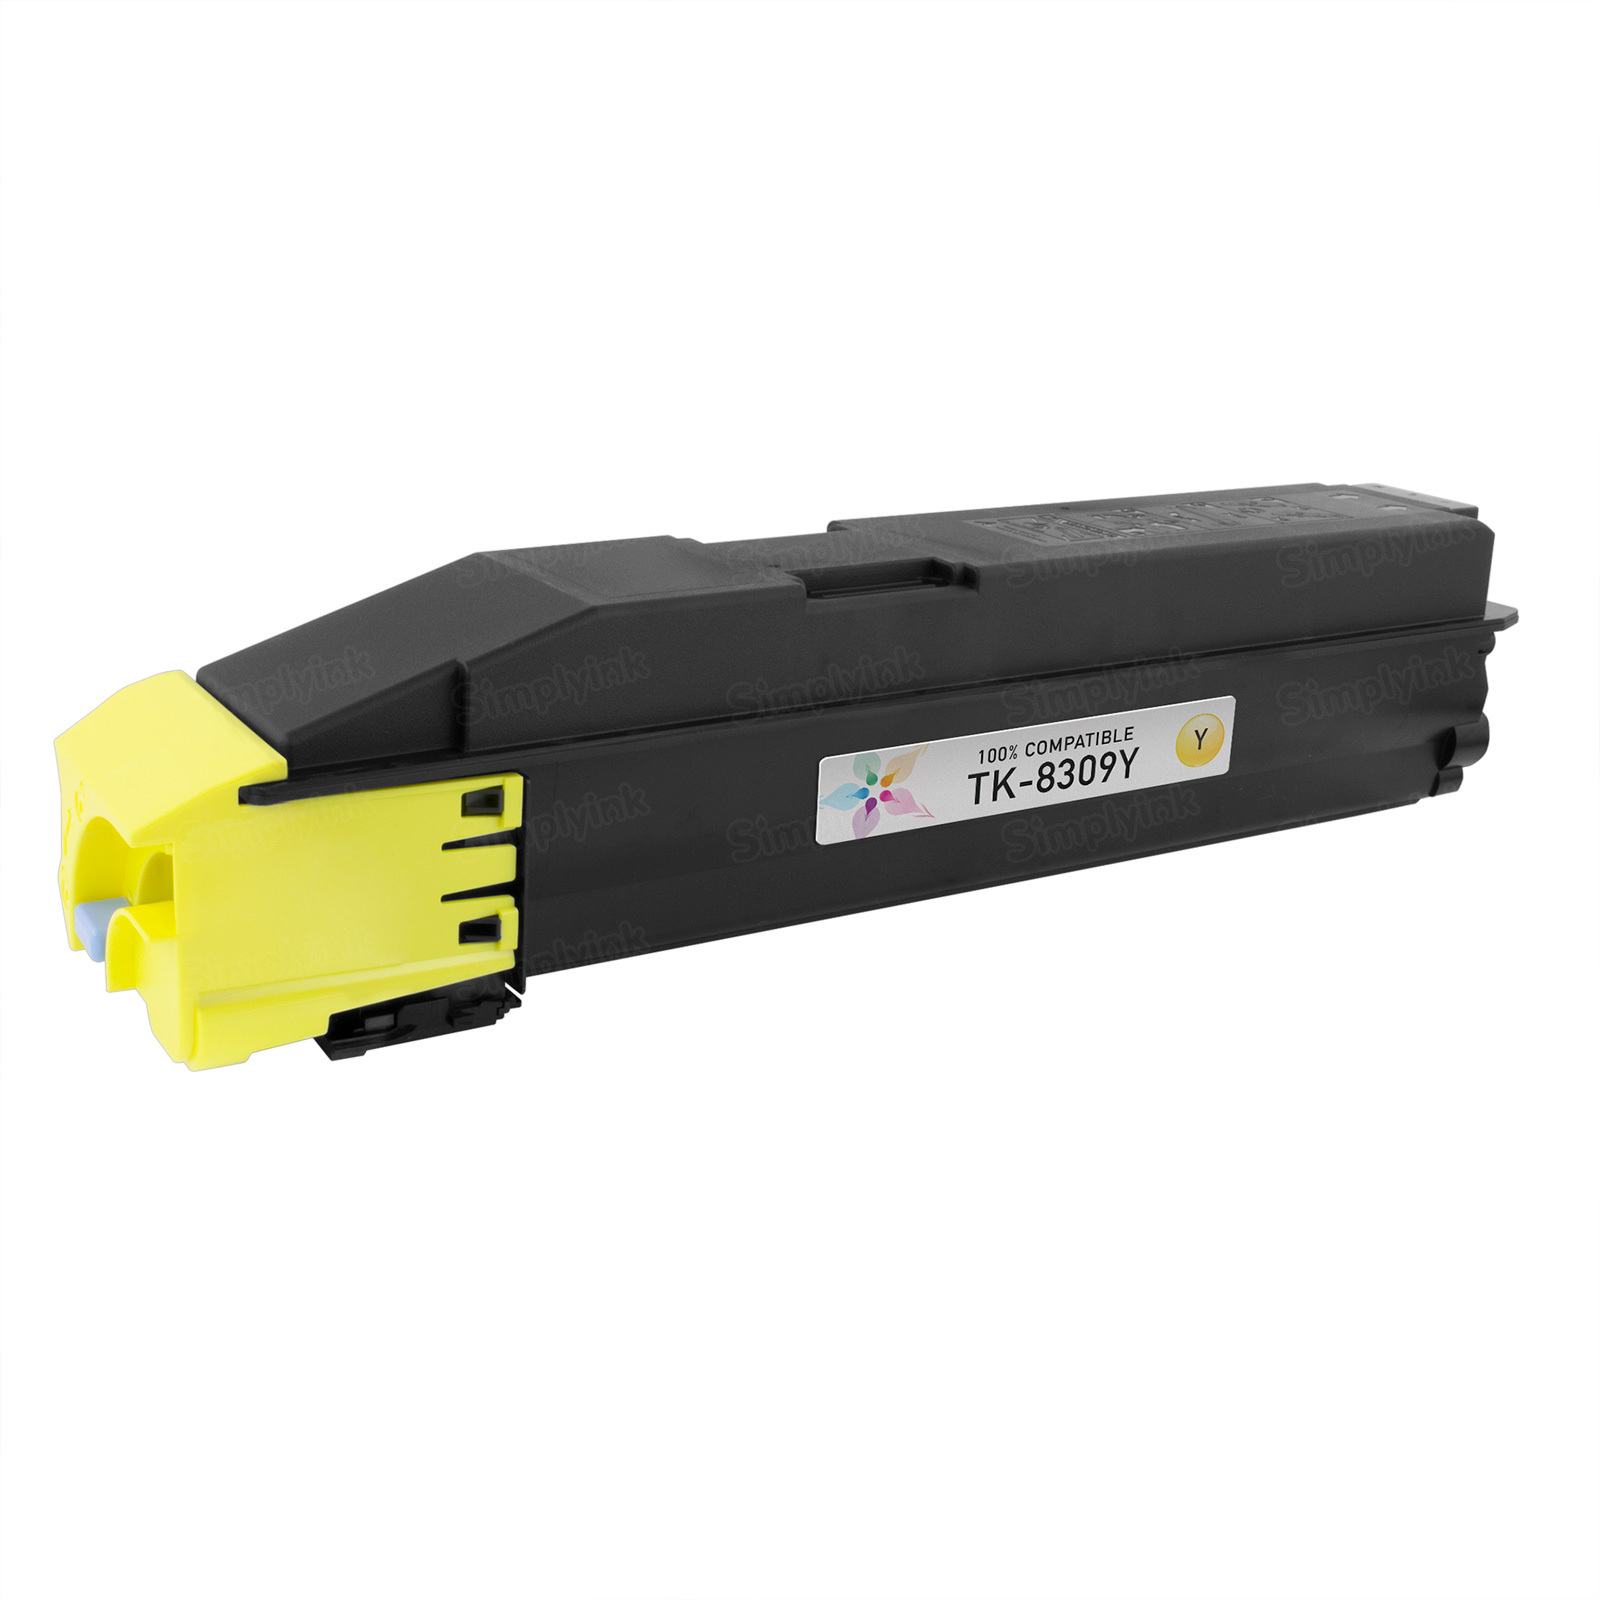 Kyocera Compatible TK-8309Y Yellow Toner Cartridge